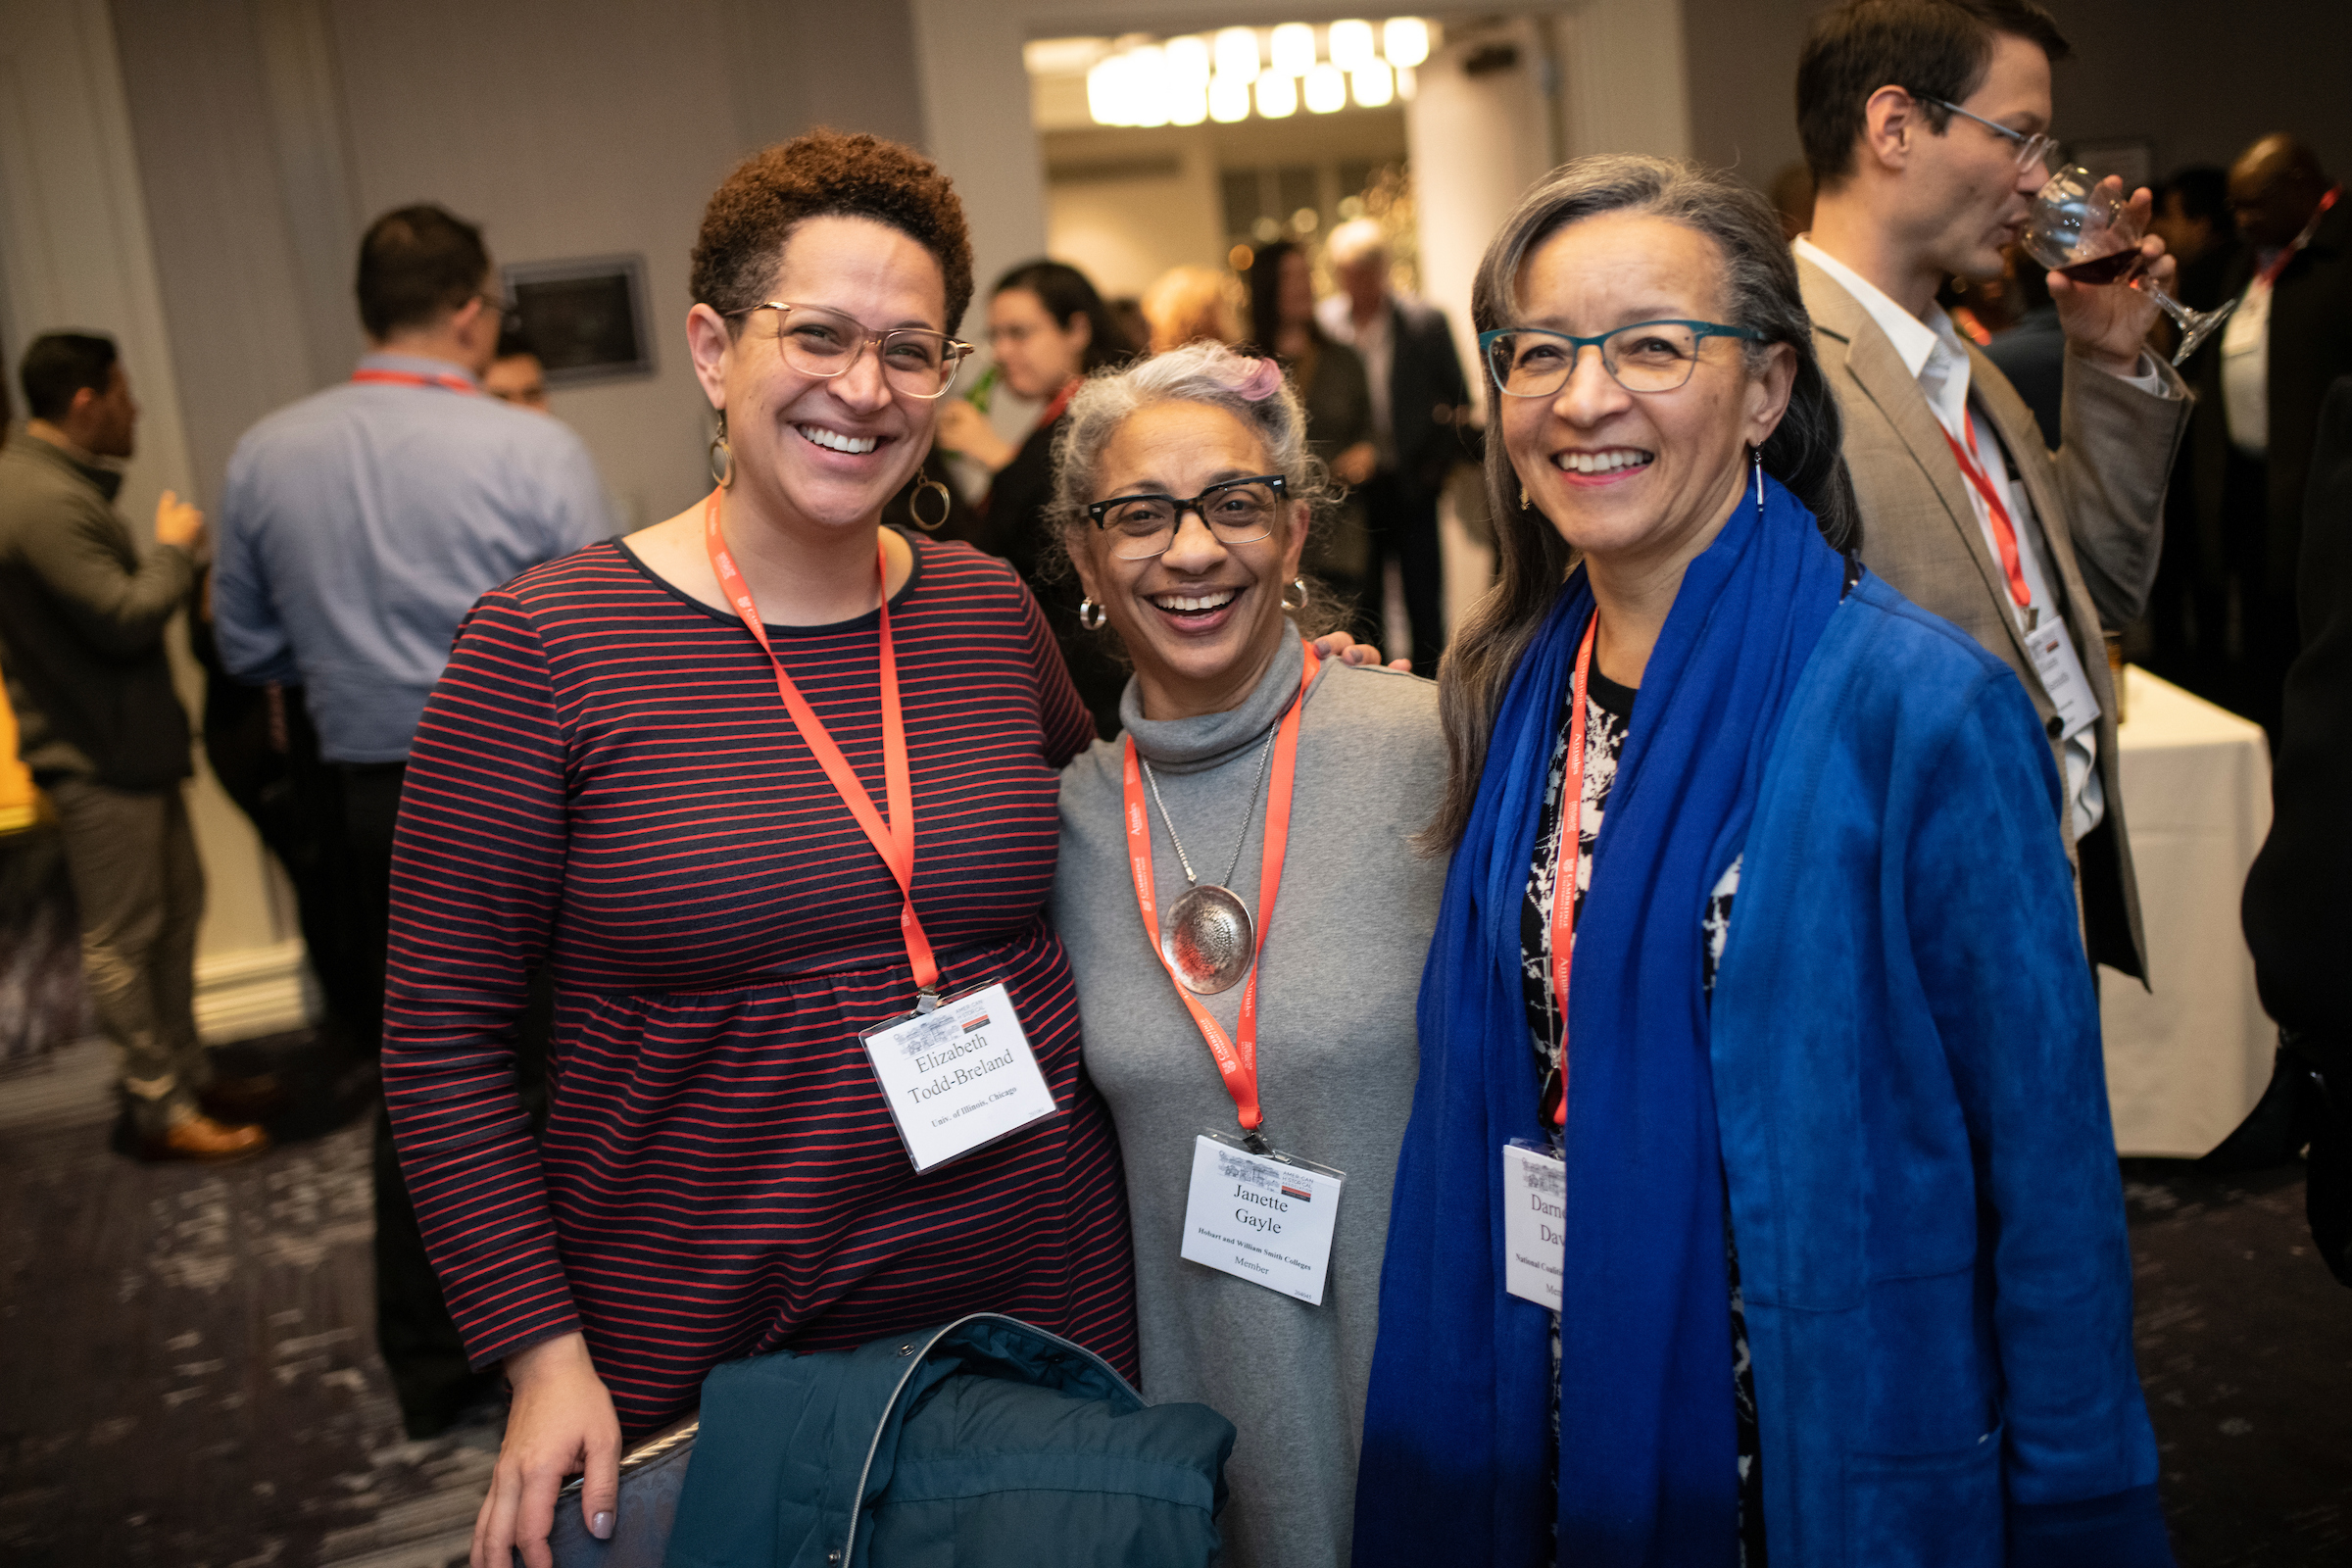 Elizabeth Todd-Breland, Janette Gayle, and Darnella Davis (from left) at the Committee on Minority Historians reception.